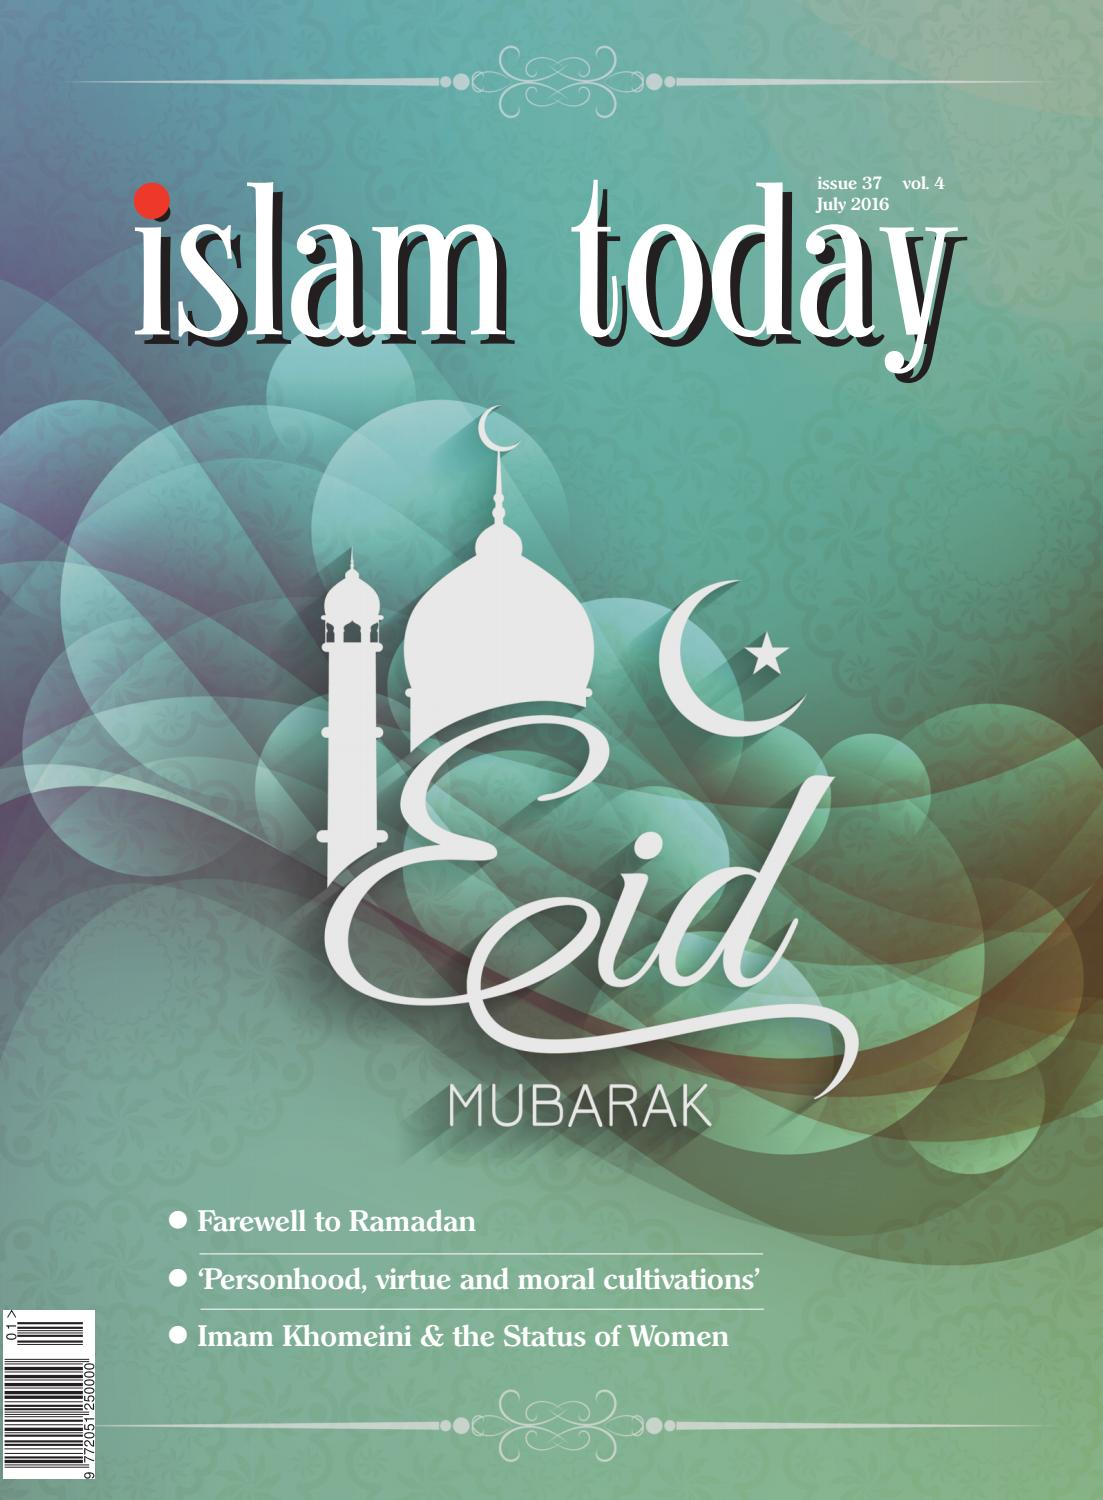 islam today - July 2016 - issue 37 by islam today magazine